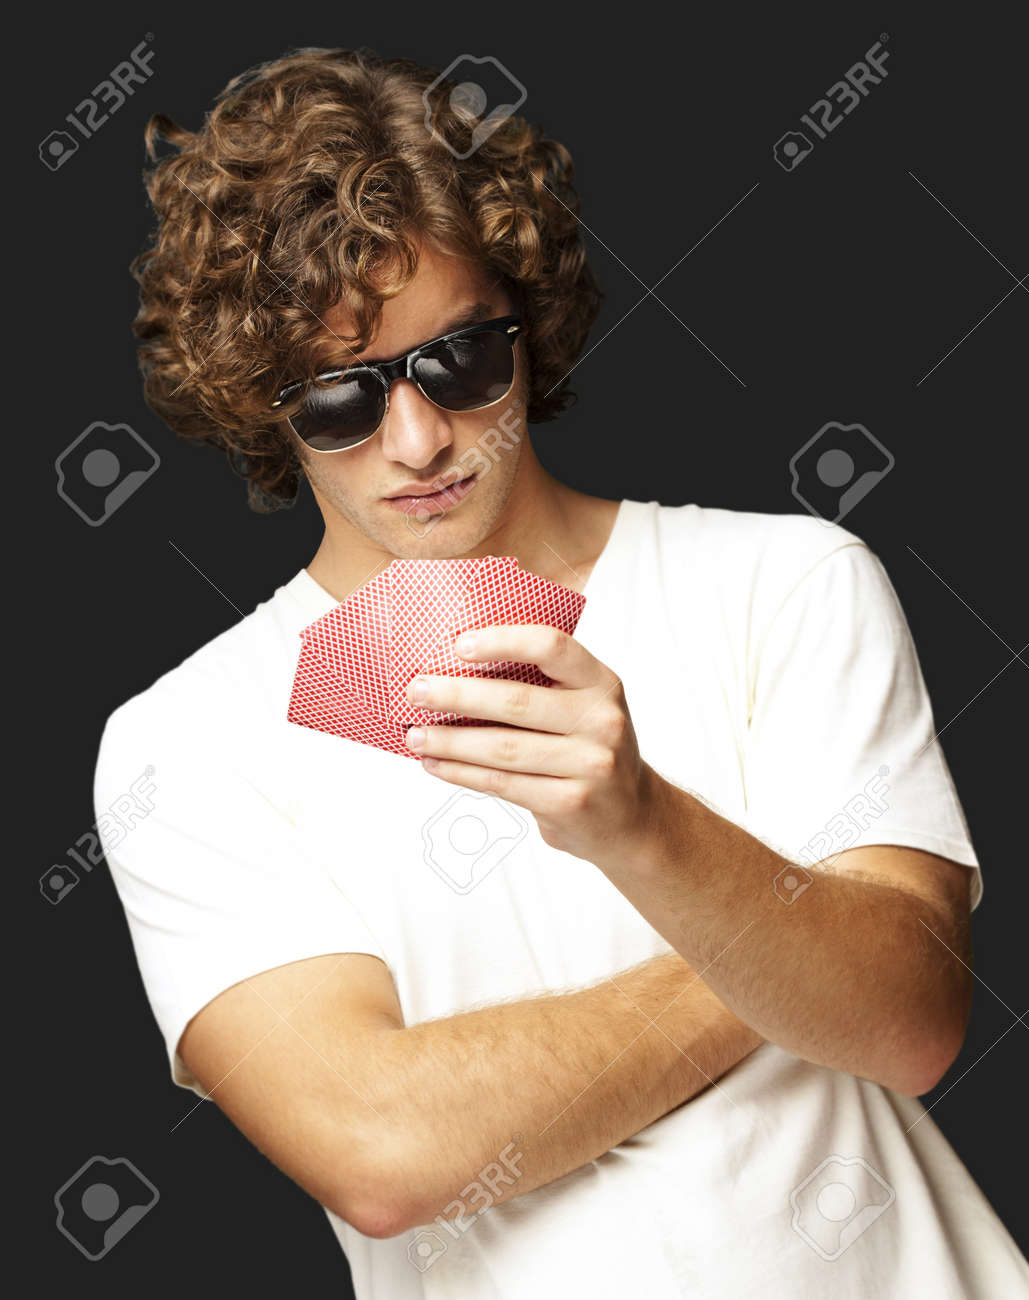 young man holding cards and wearing sunglasses against a black background Stock Photo - 13486247